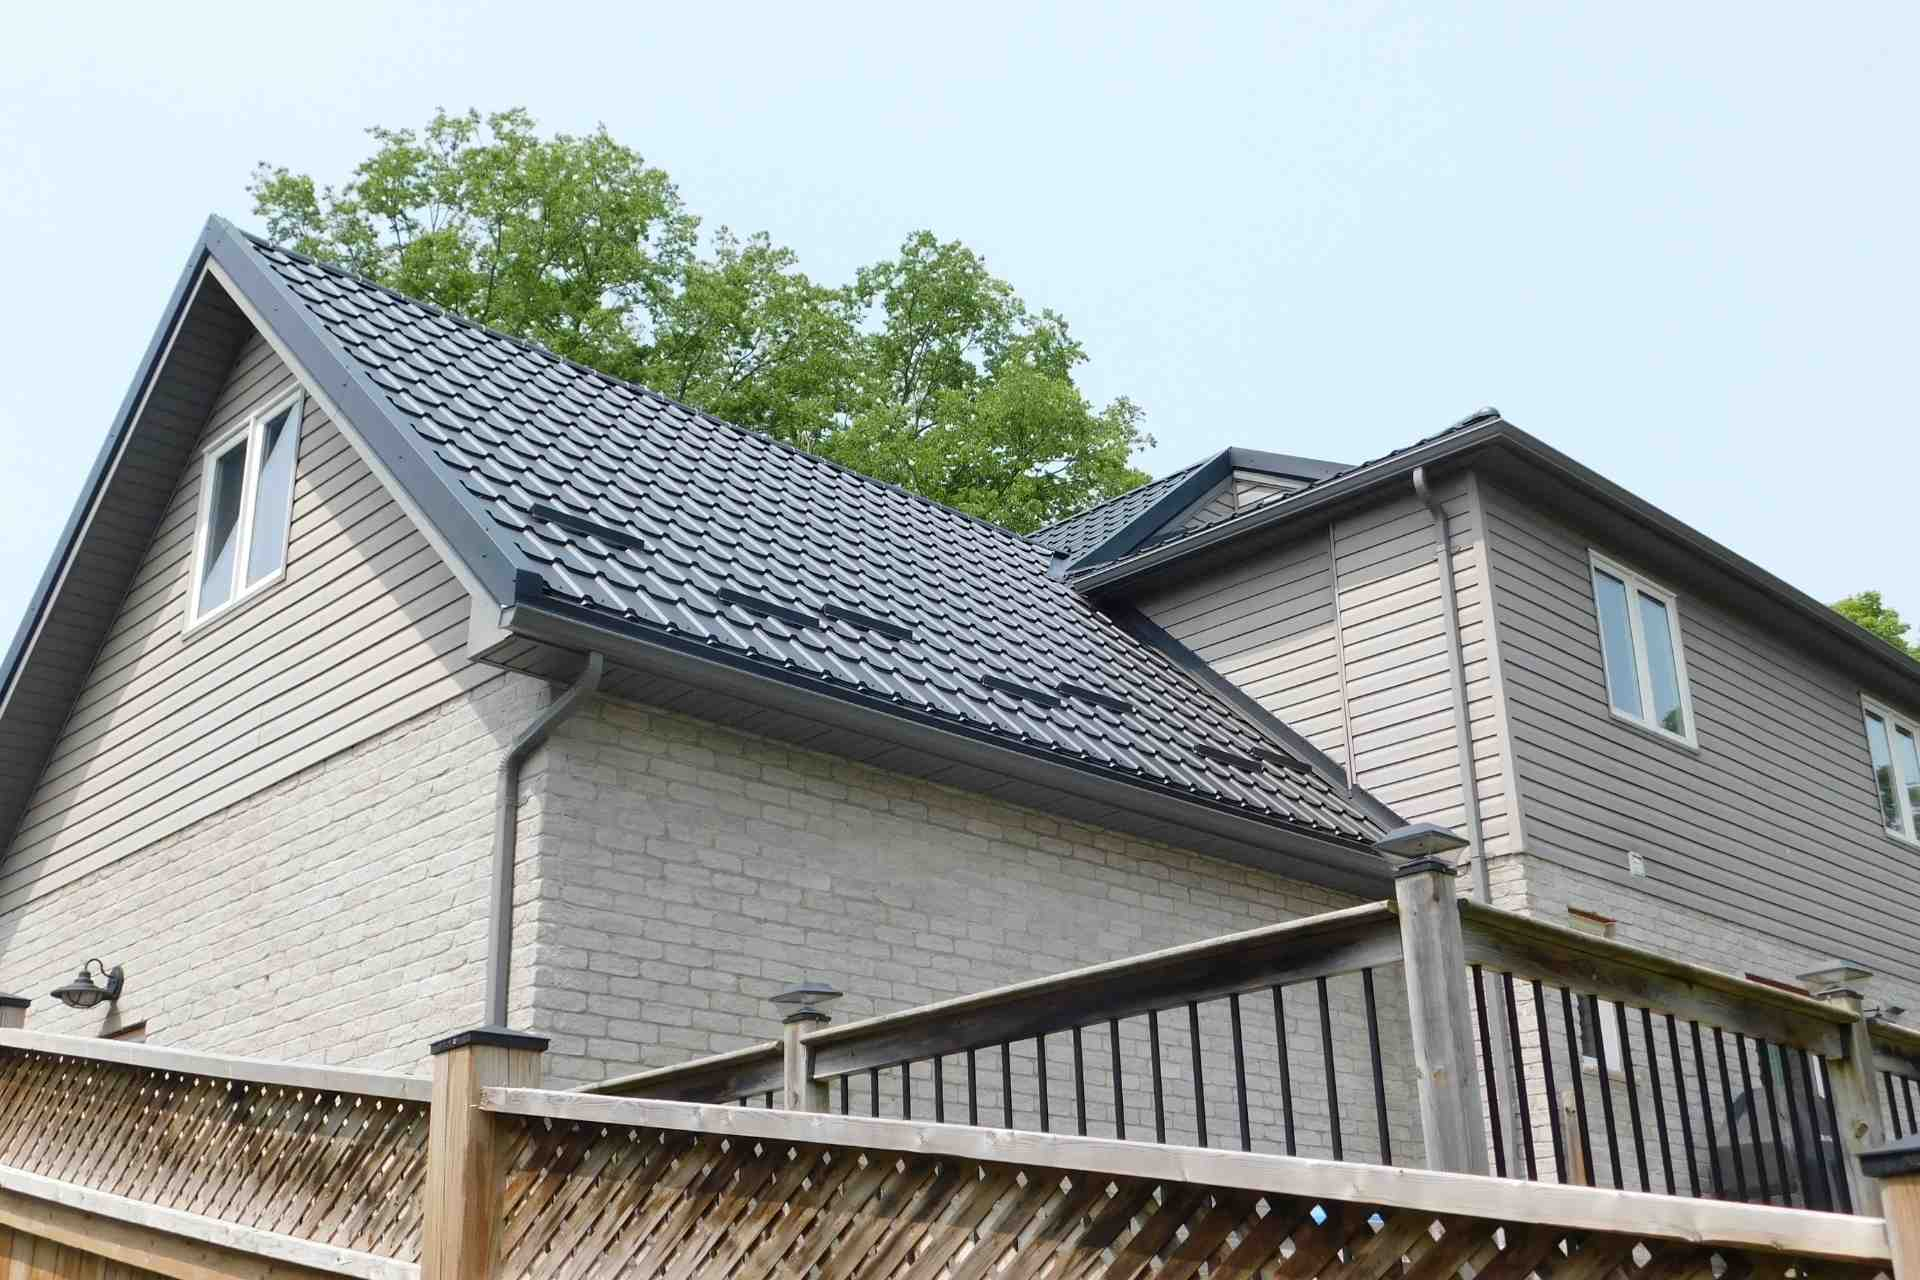 How Often Should I Have My Roof Inspected?